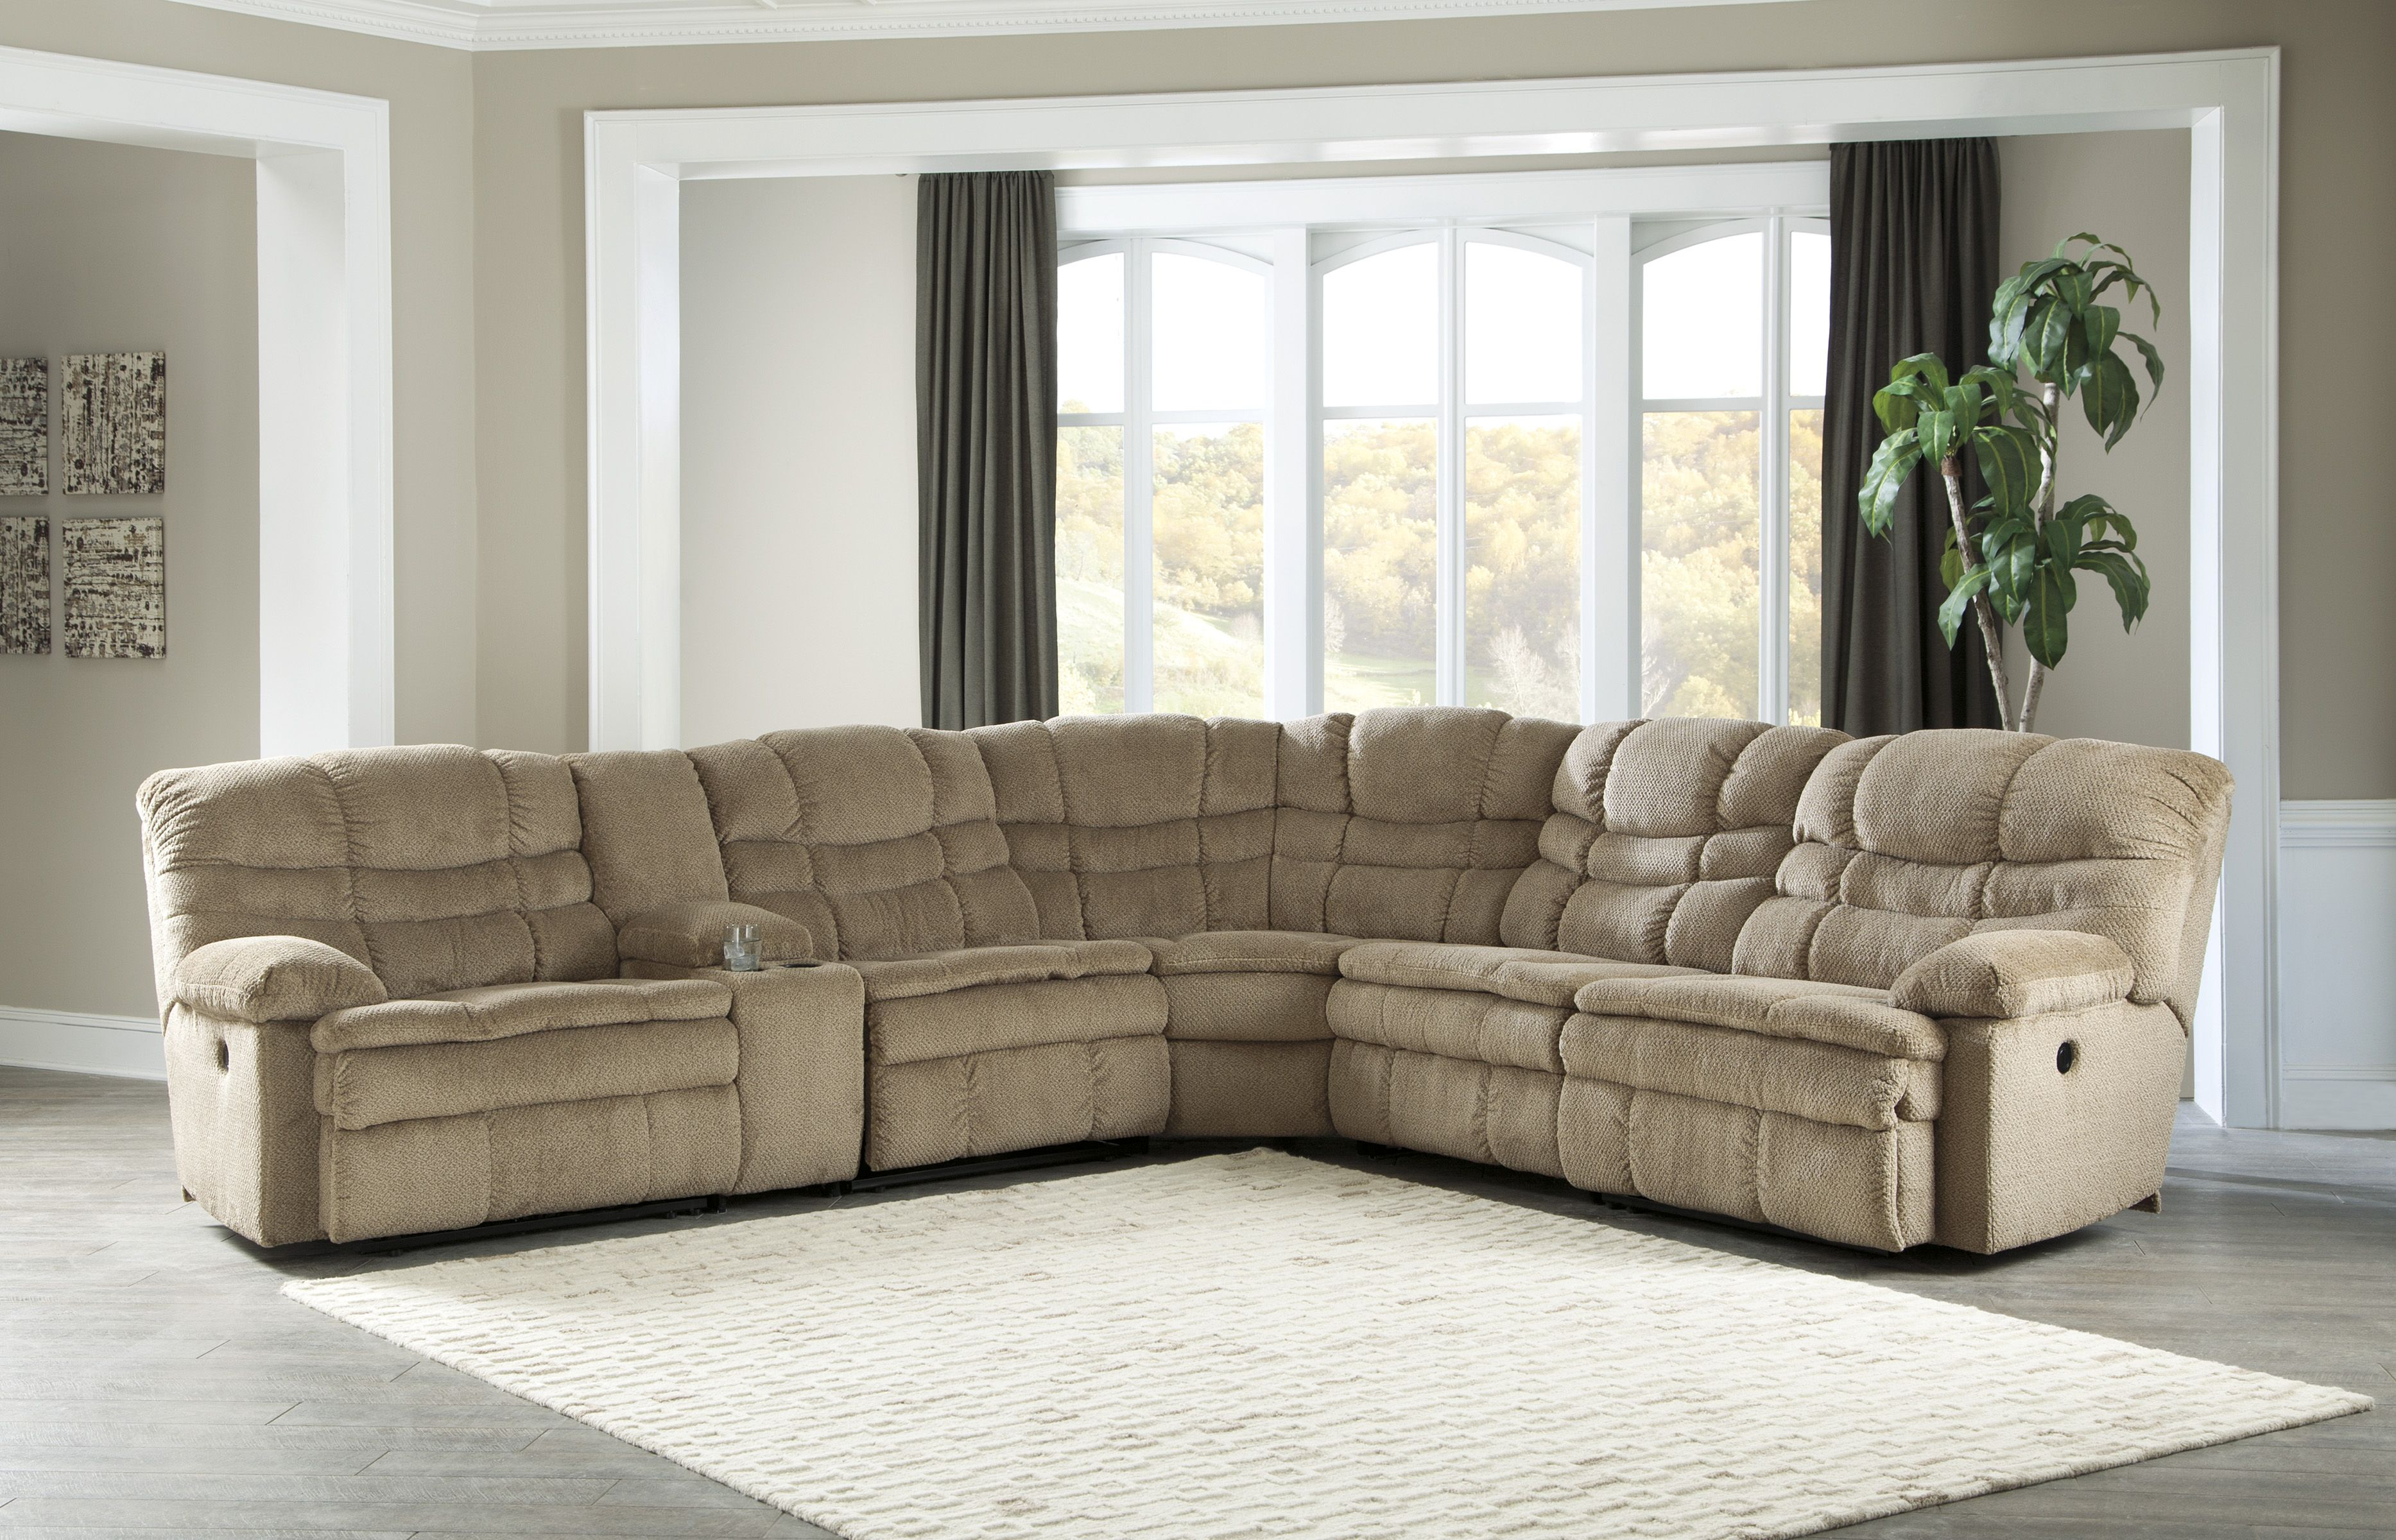 Ashley Series 663 Sectional Sofa Couch Reclining Sectional Sectional Sofa